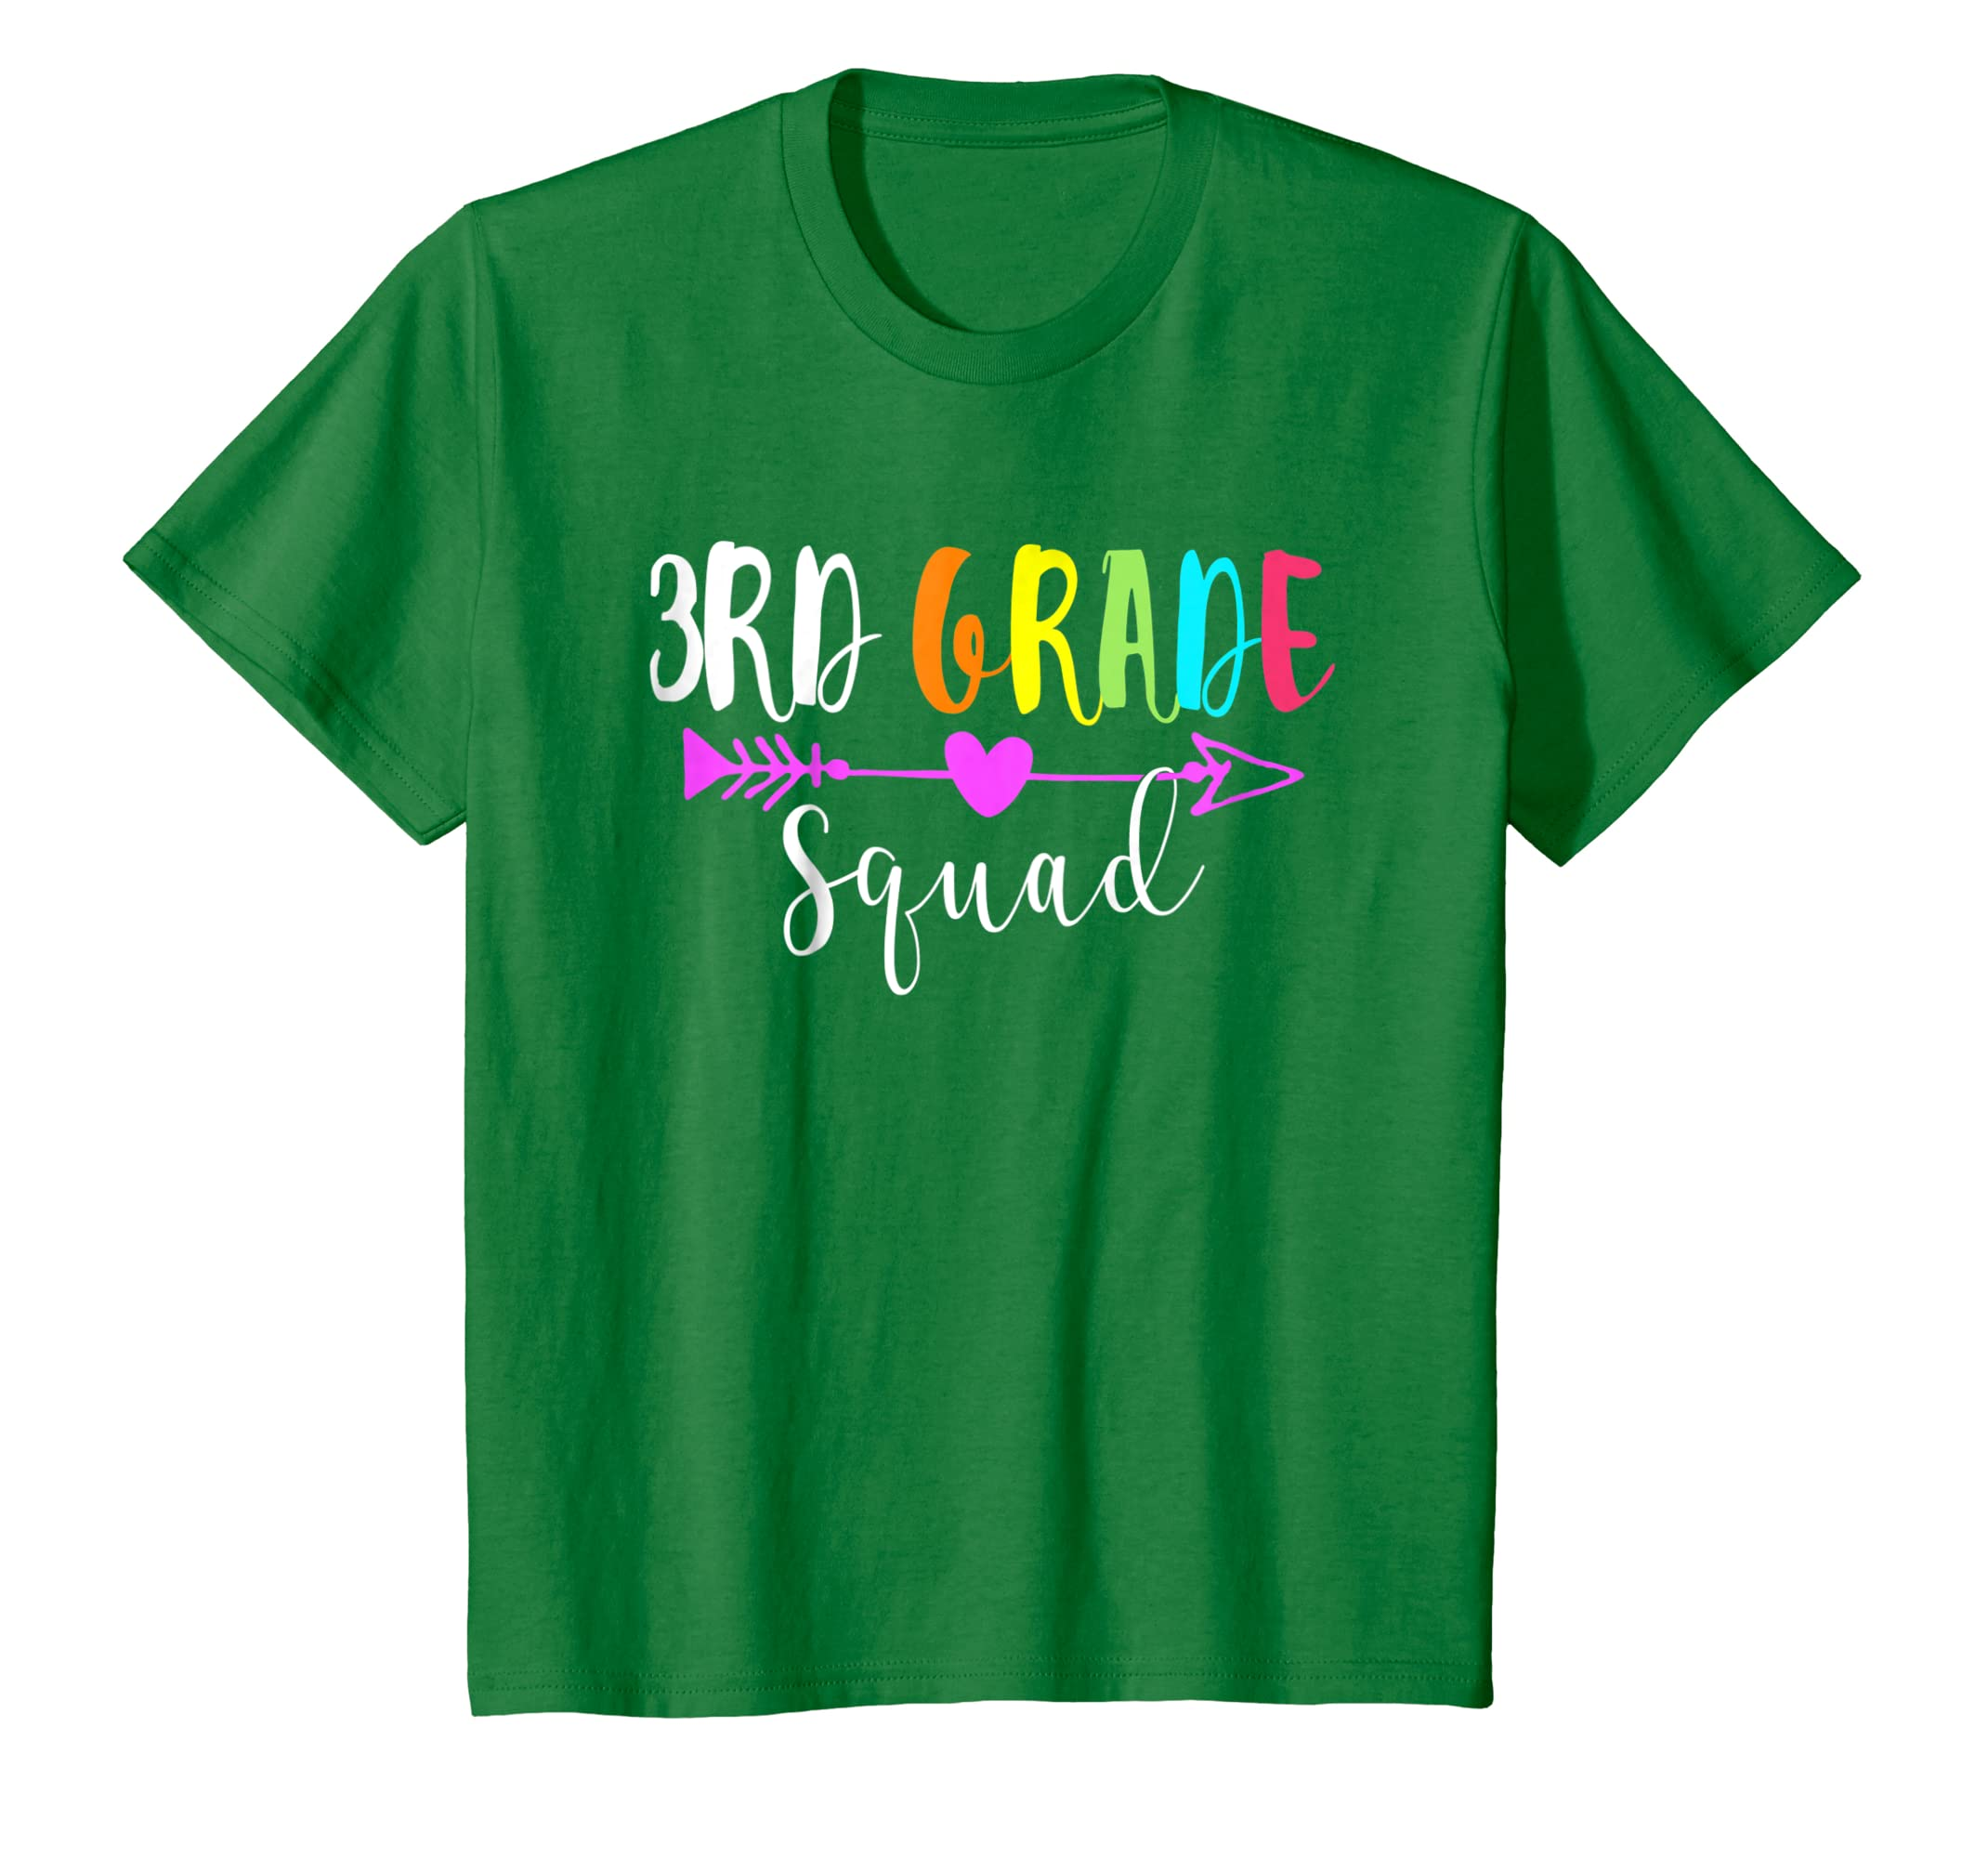 3rd Grade Squad Tshirt Happy First Day Of School Gift